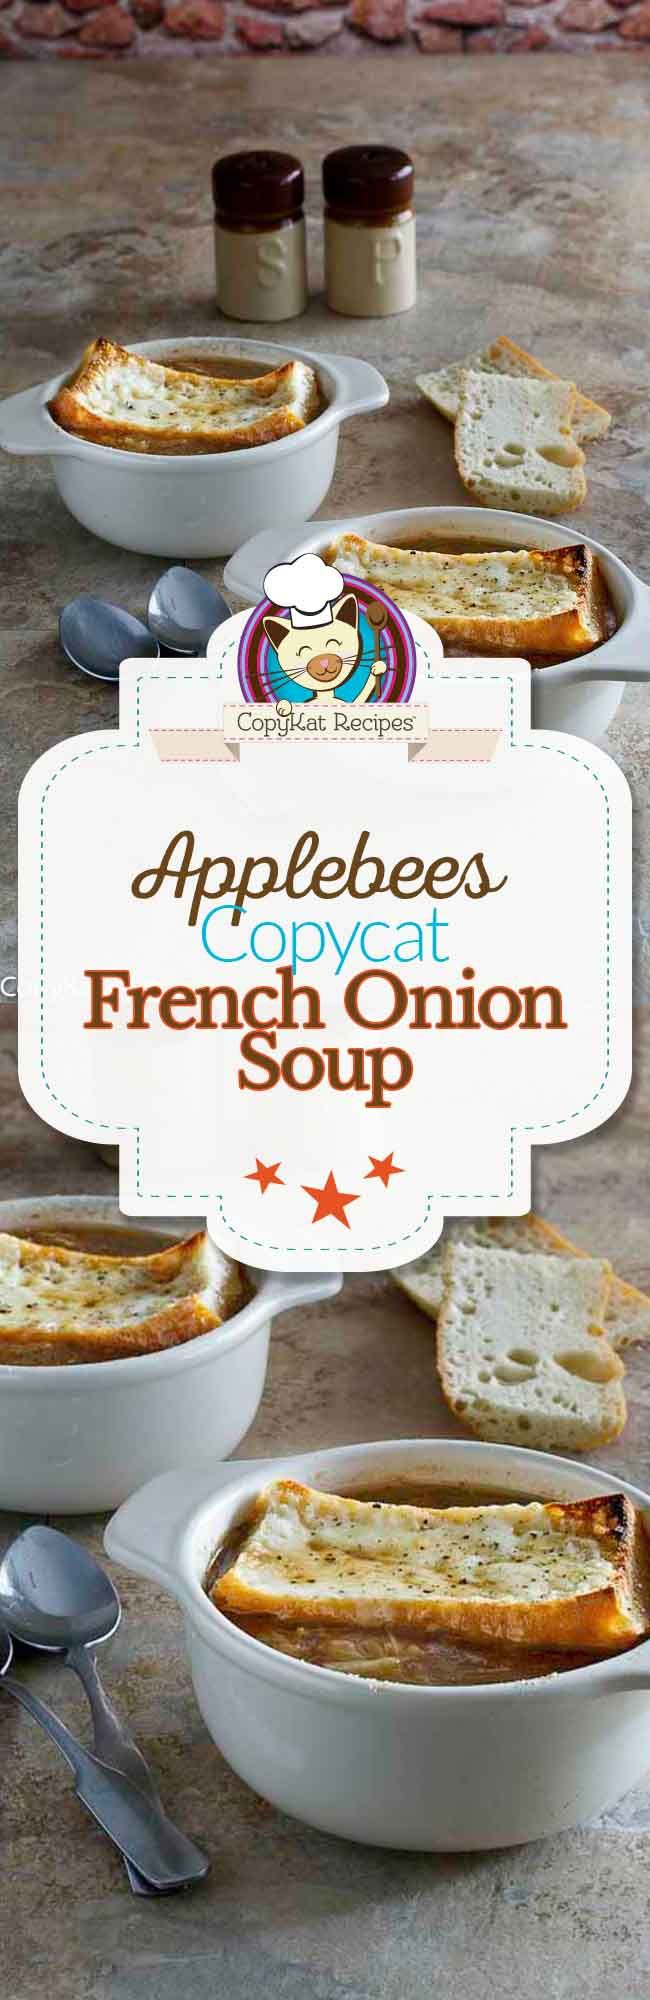 Recreate Applebees French Onion Soup, you will be amazed at how easy it is to make this soup.